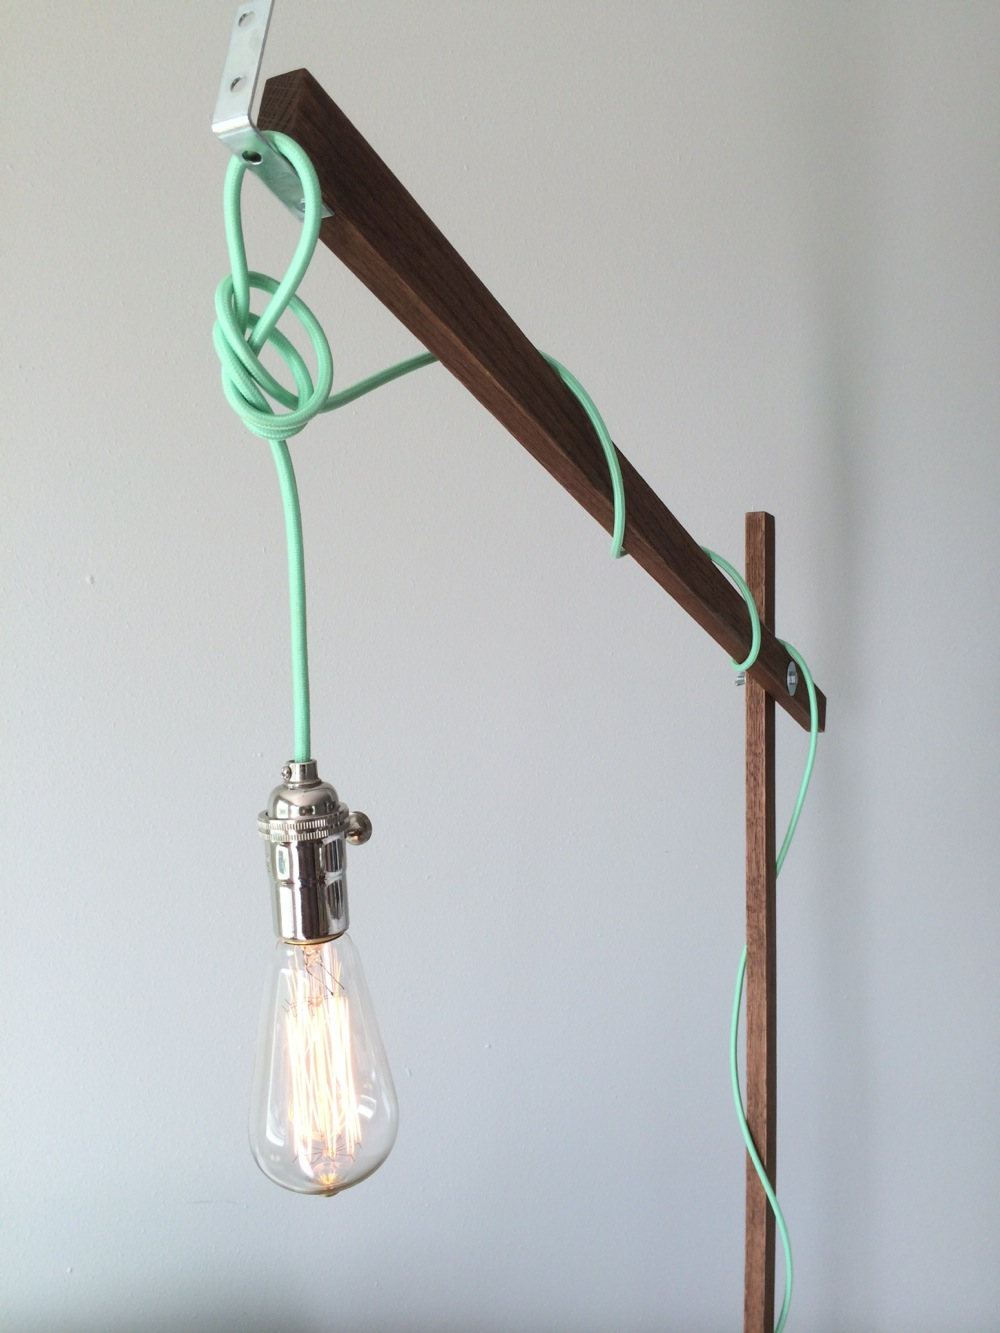 Light Up The Living Room With These 25 Diy Floor Lamps